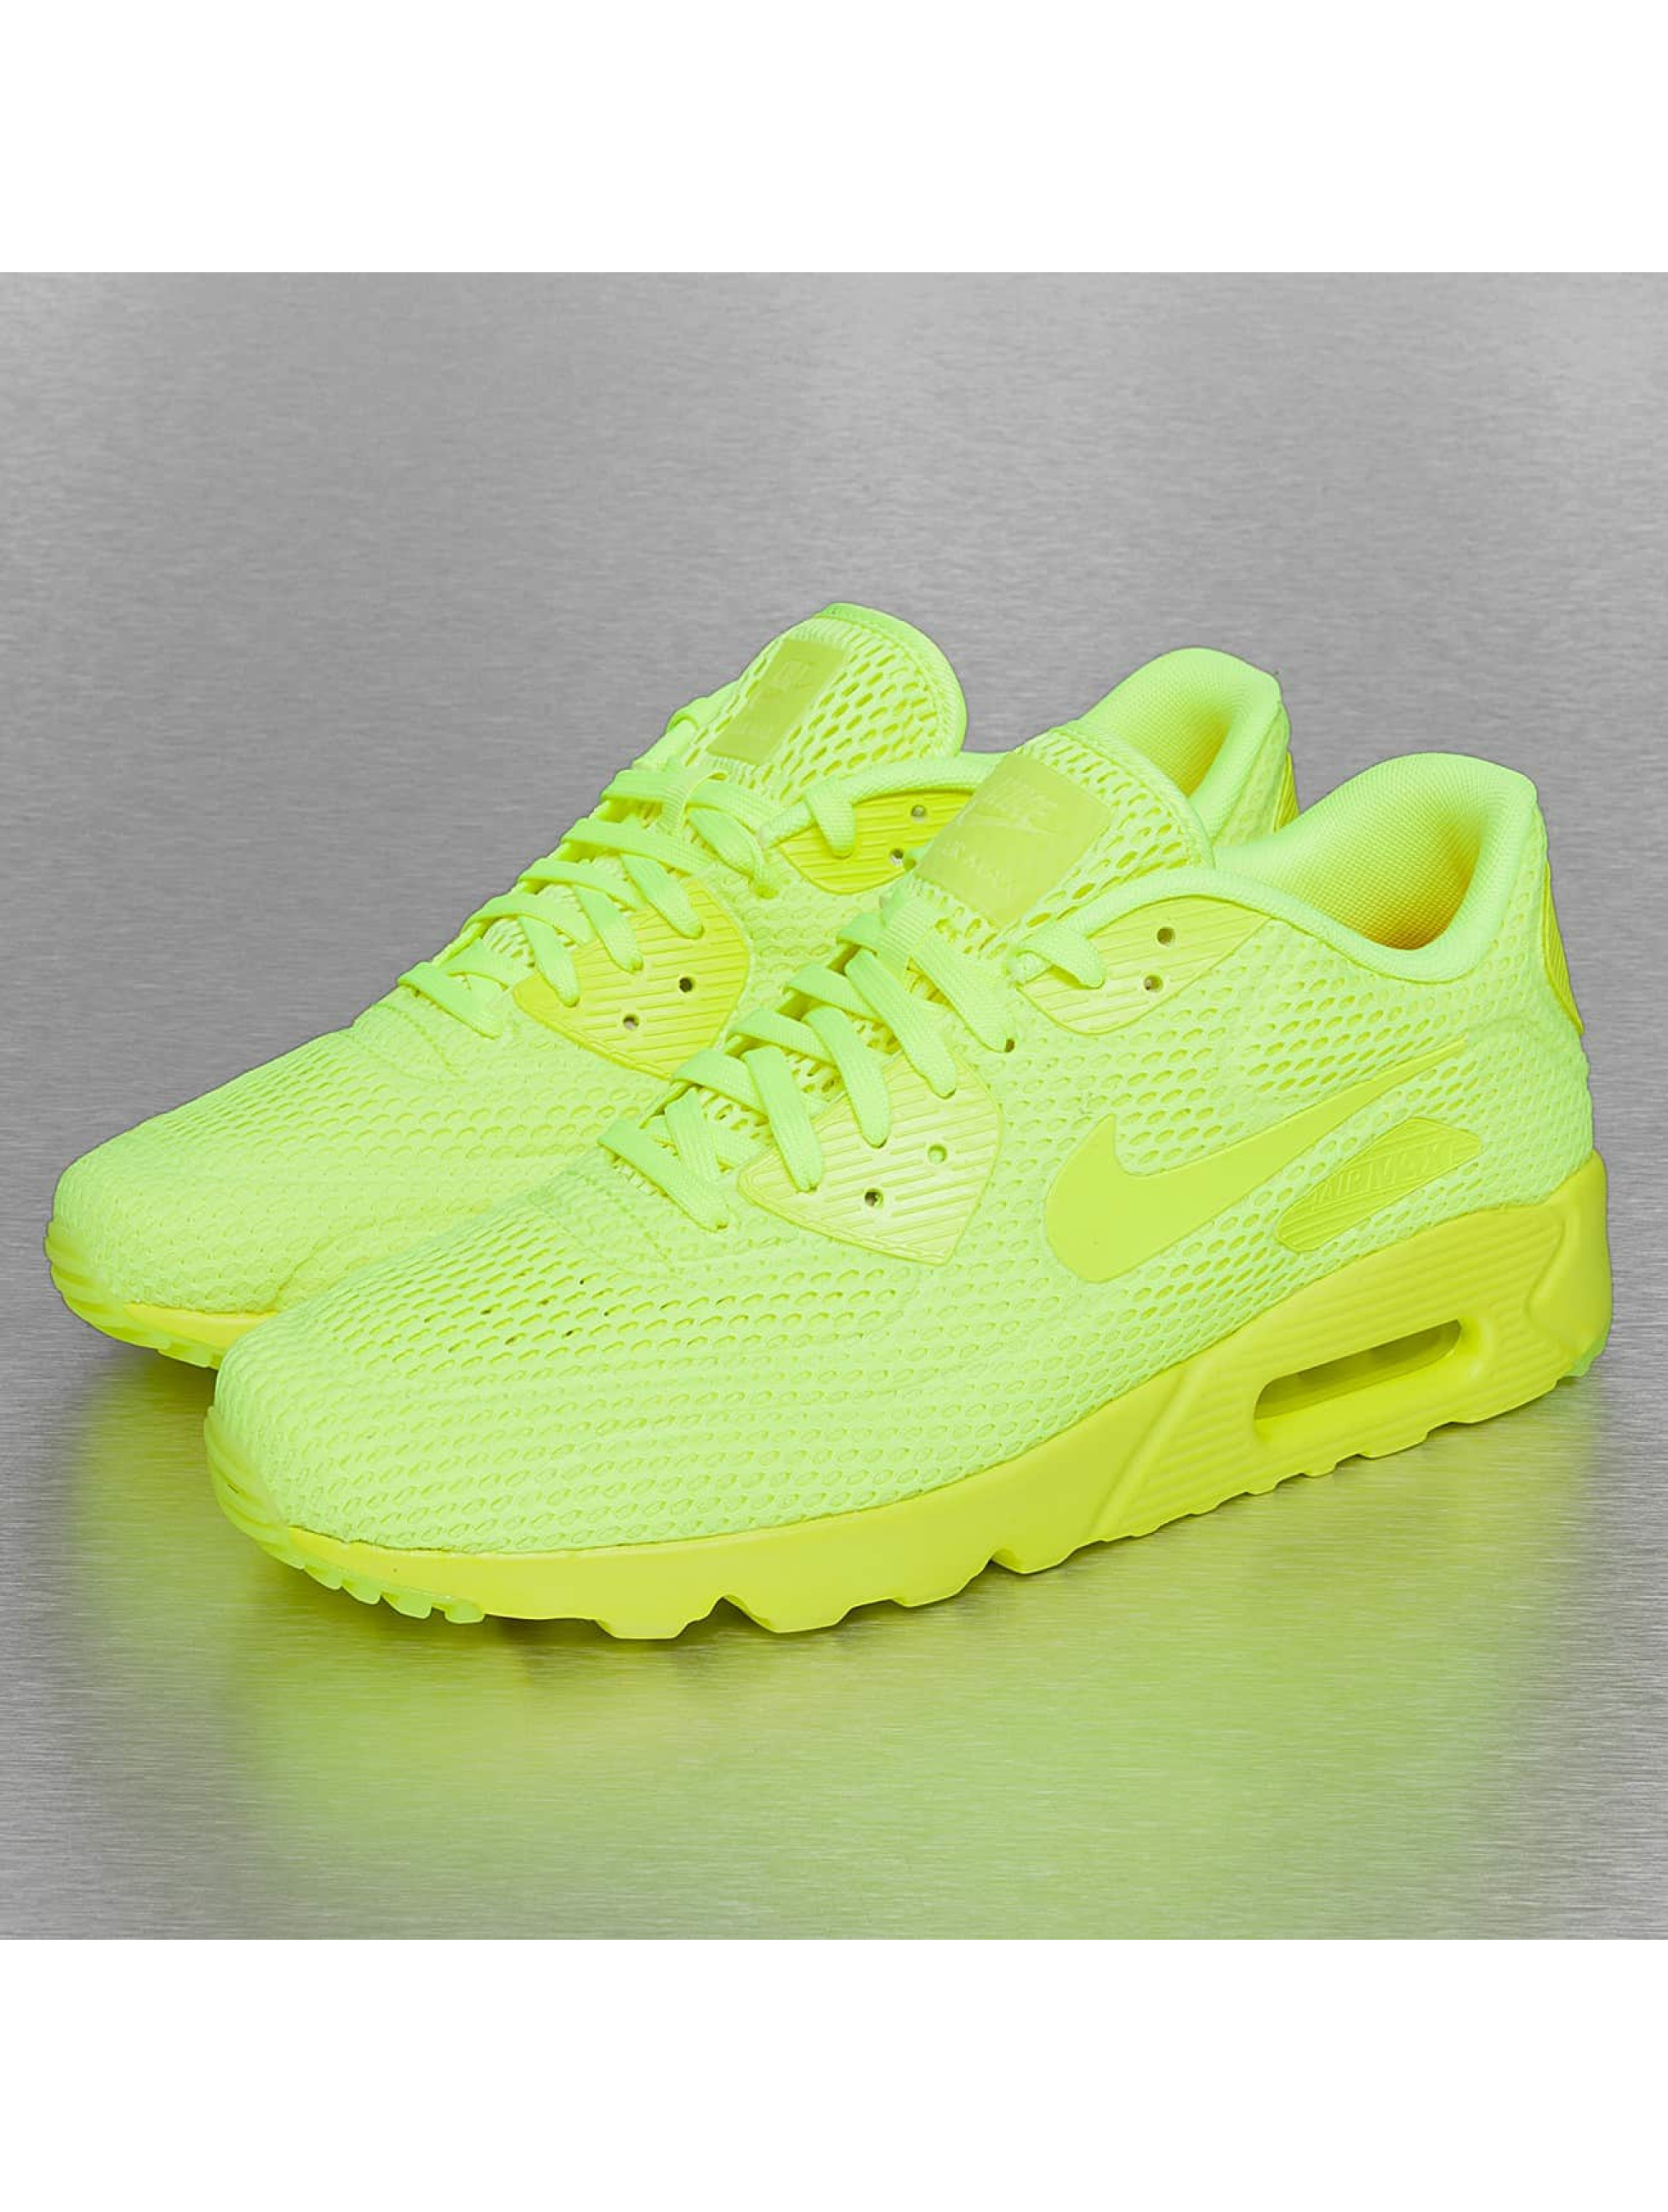 Sneaker Air Max 90 Ultra BR in gelb